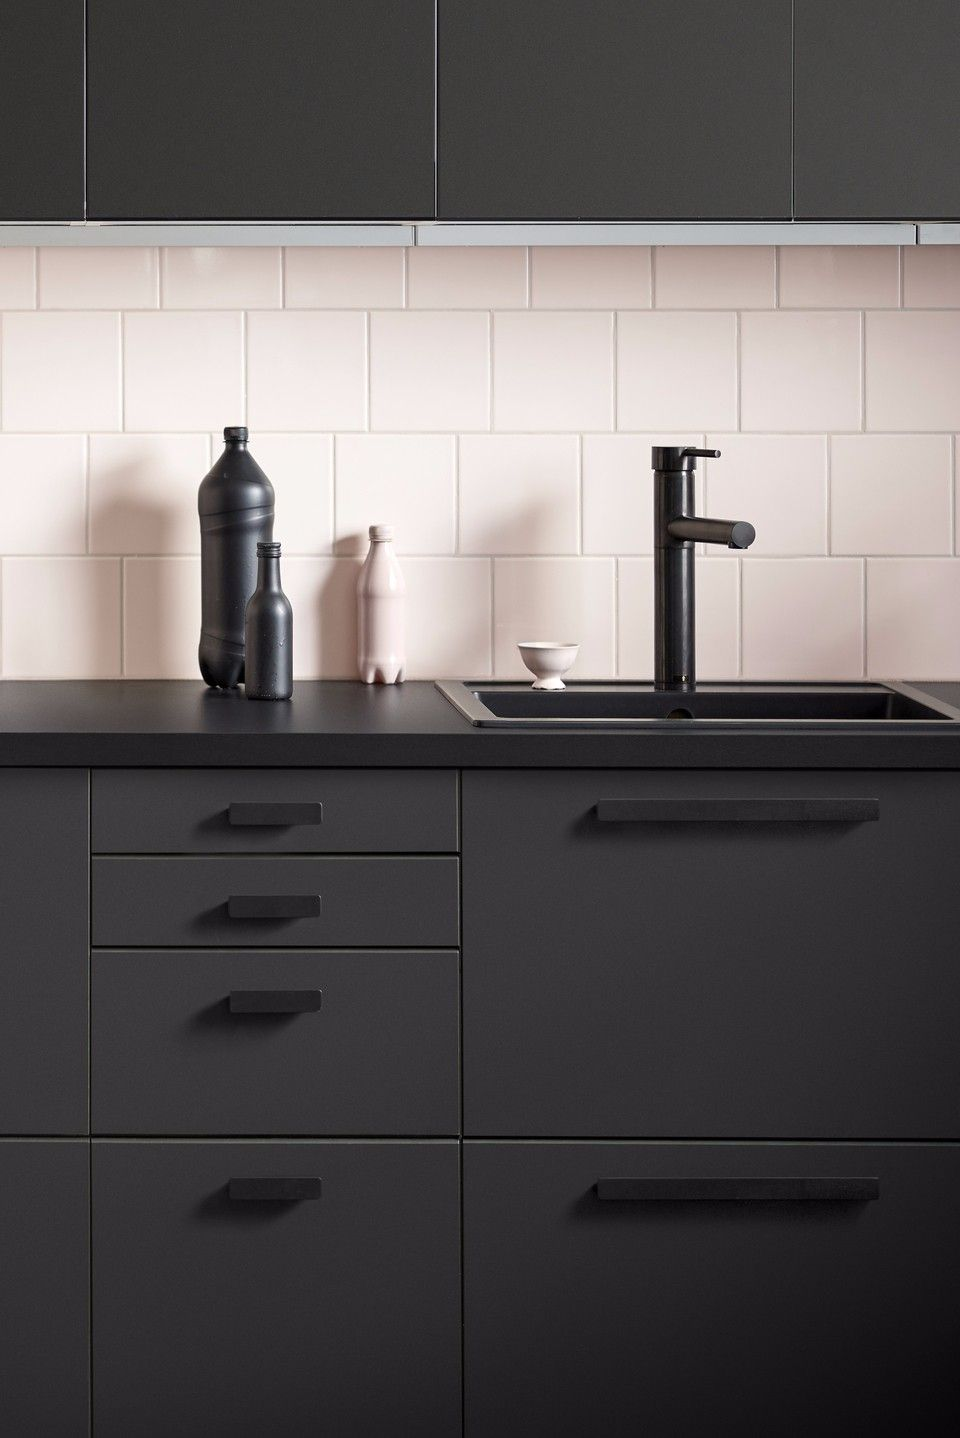 Ikea Just Released The Sleekest Kitchen Cabinets All Made From